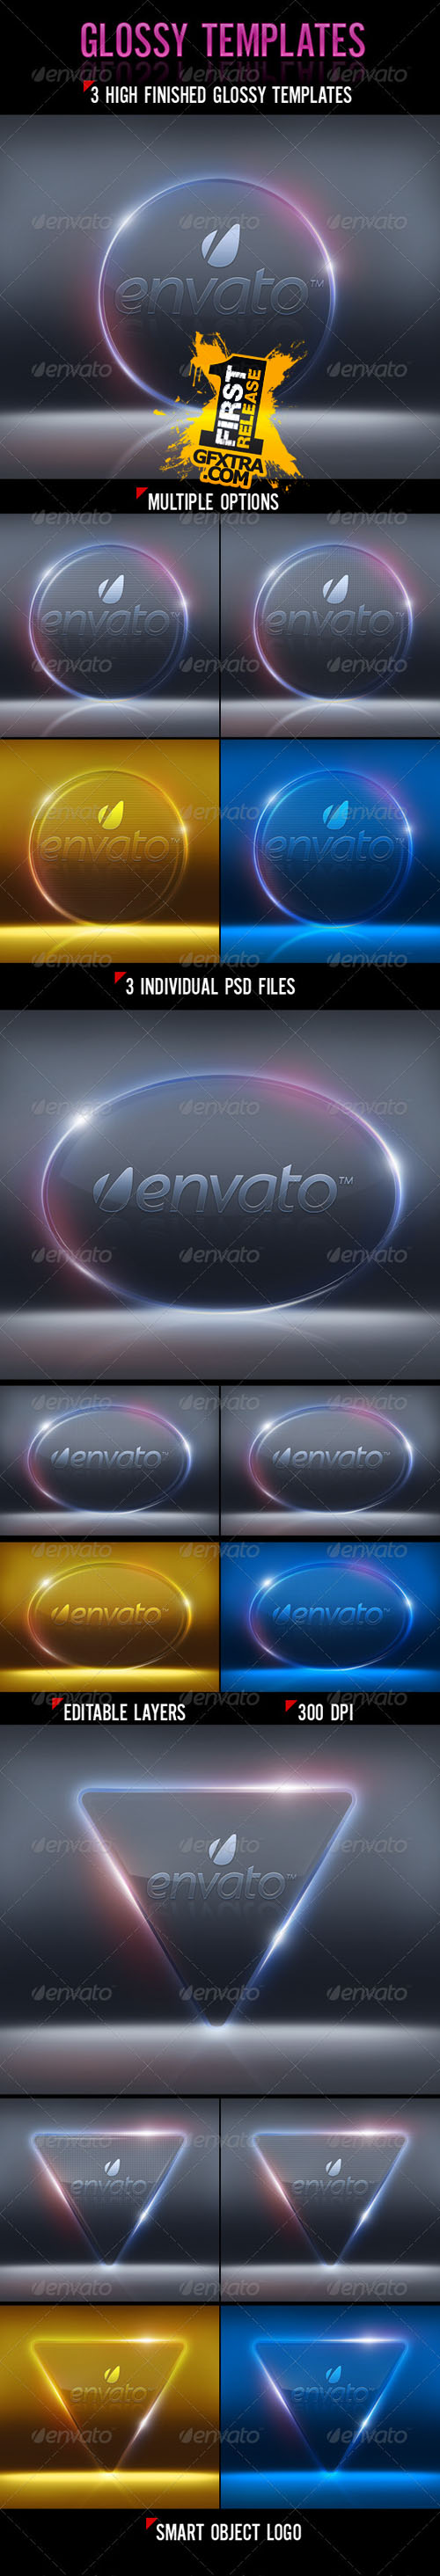 GraphicRiver: Glossy Templates